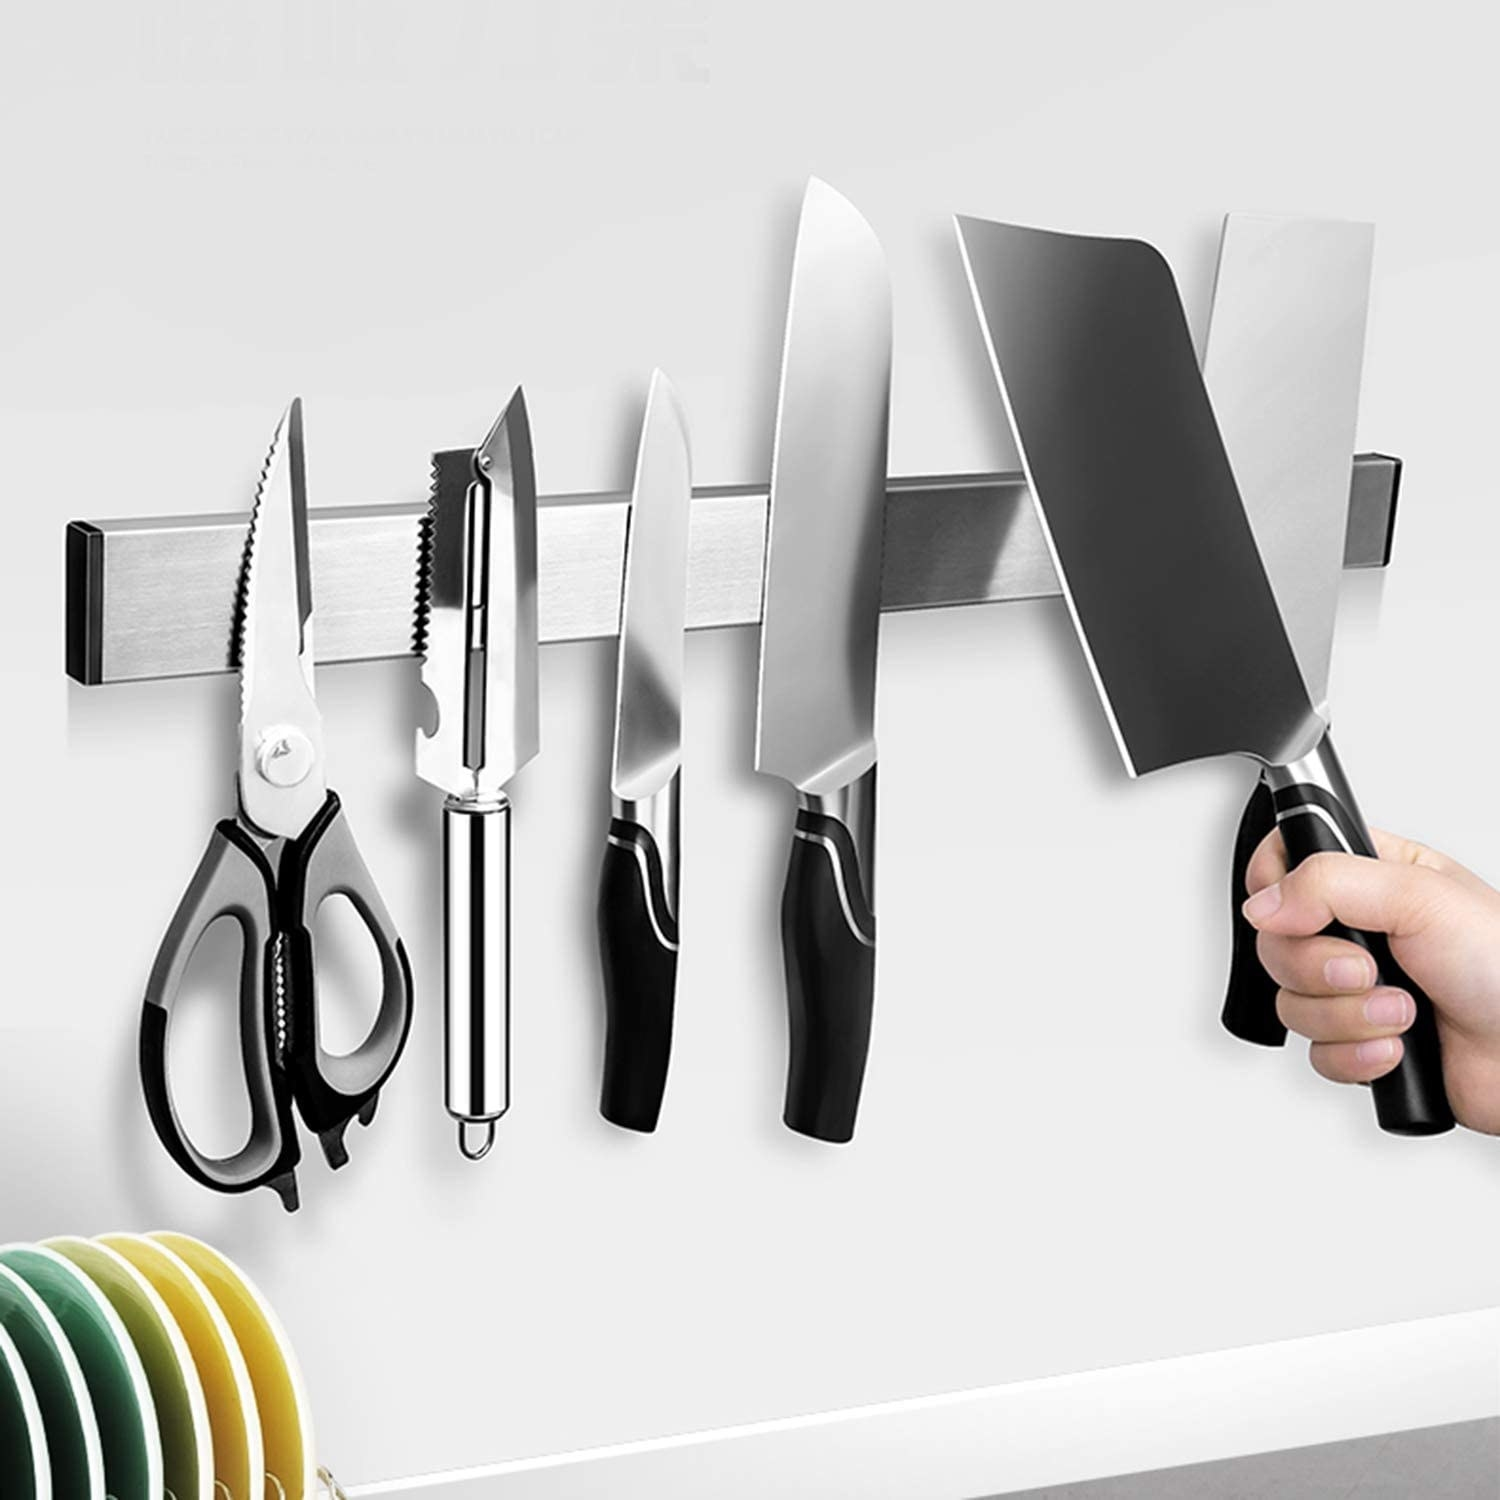 A person putting a cleaver onto a large magnetic wall strip